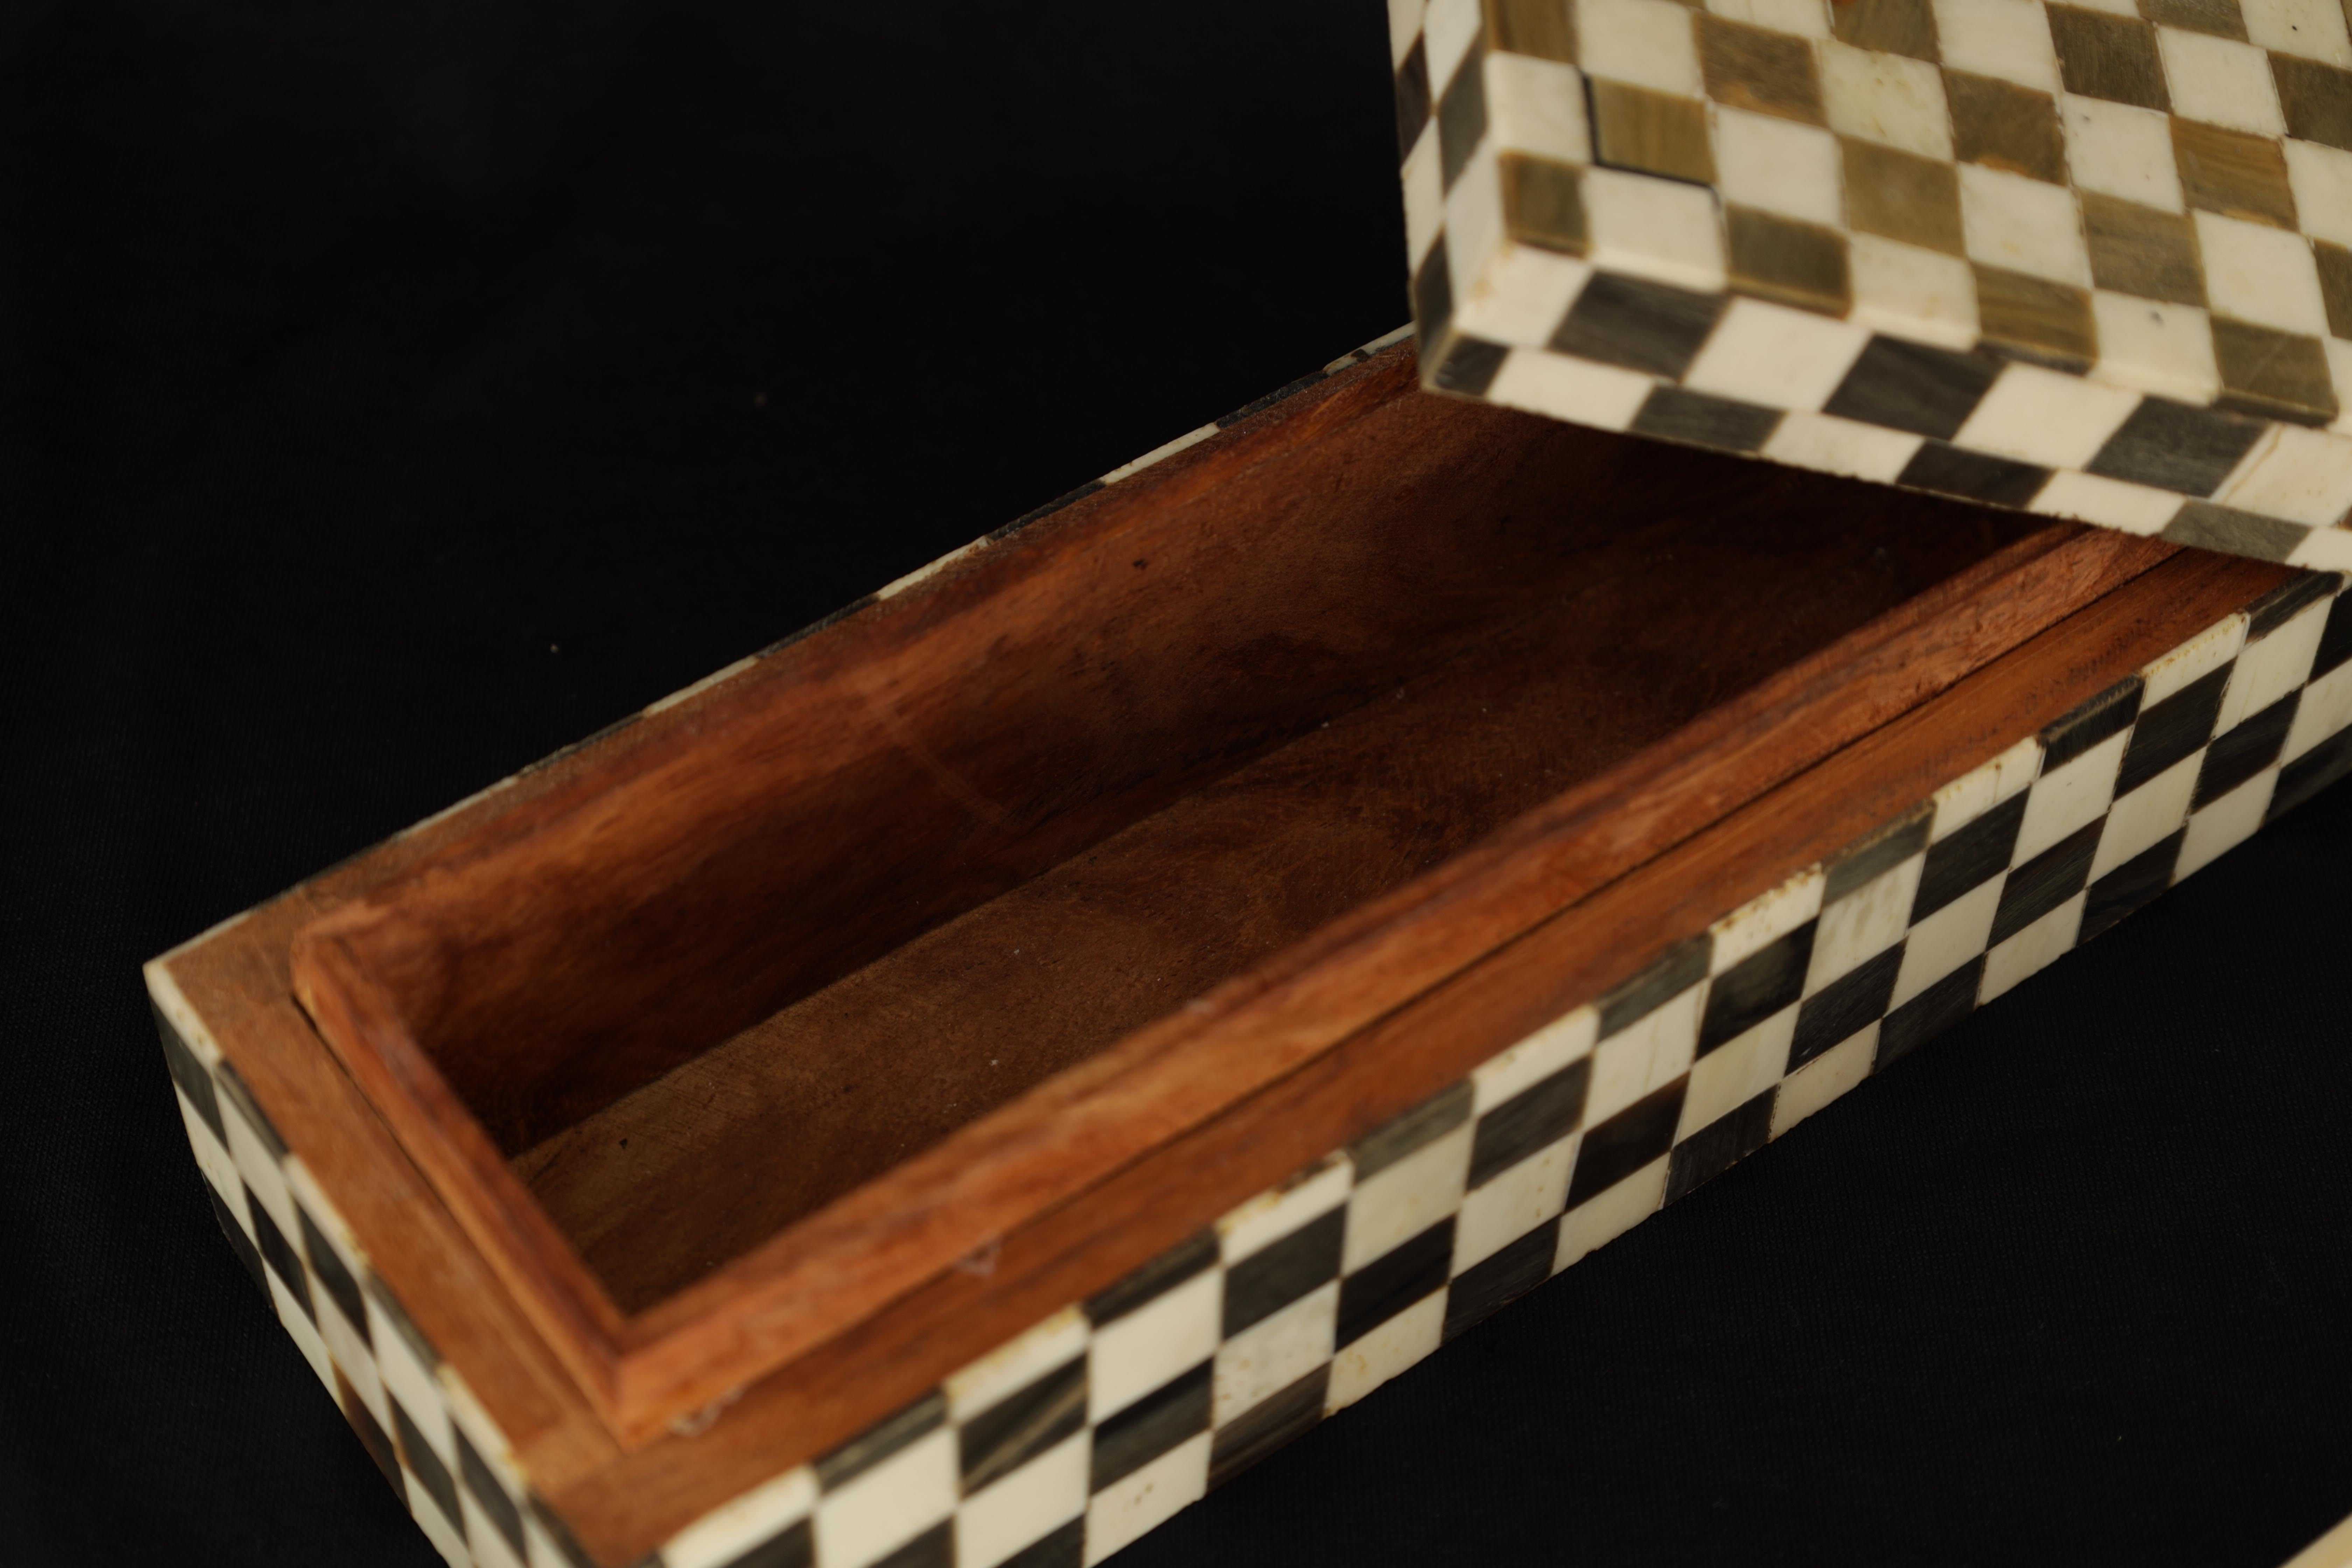 AN ANGLO INDIAN CHEQUERED BALINE AND BONE INLAID HARDWOOD BOX 27cm wide 9cm deep 7cm high TOGETHER - Image 3 of 5